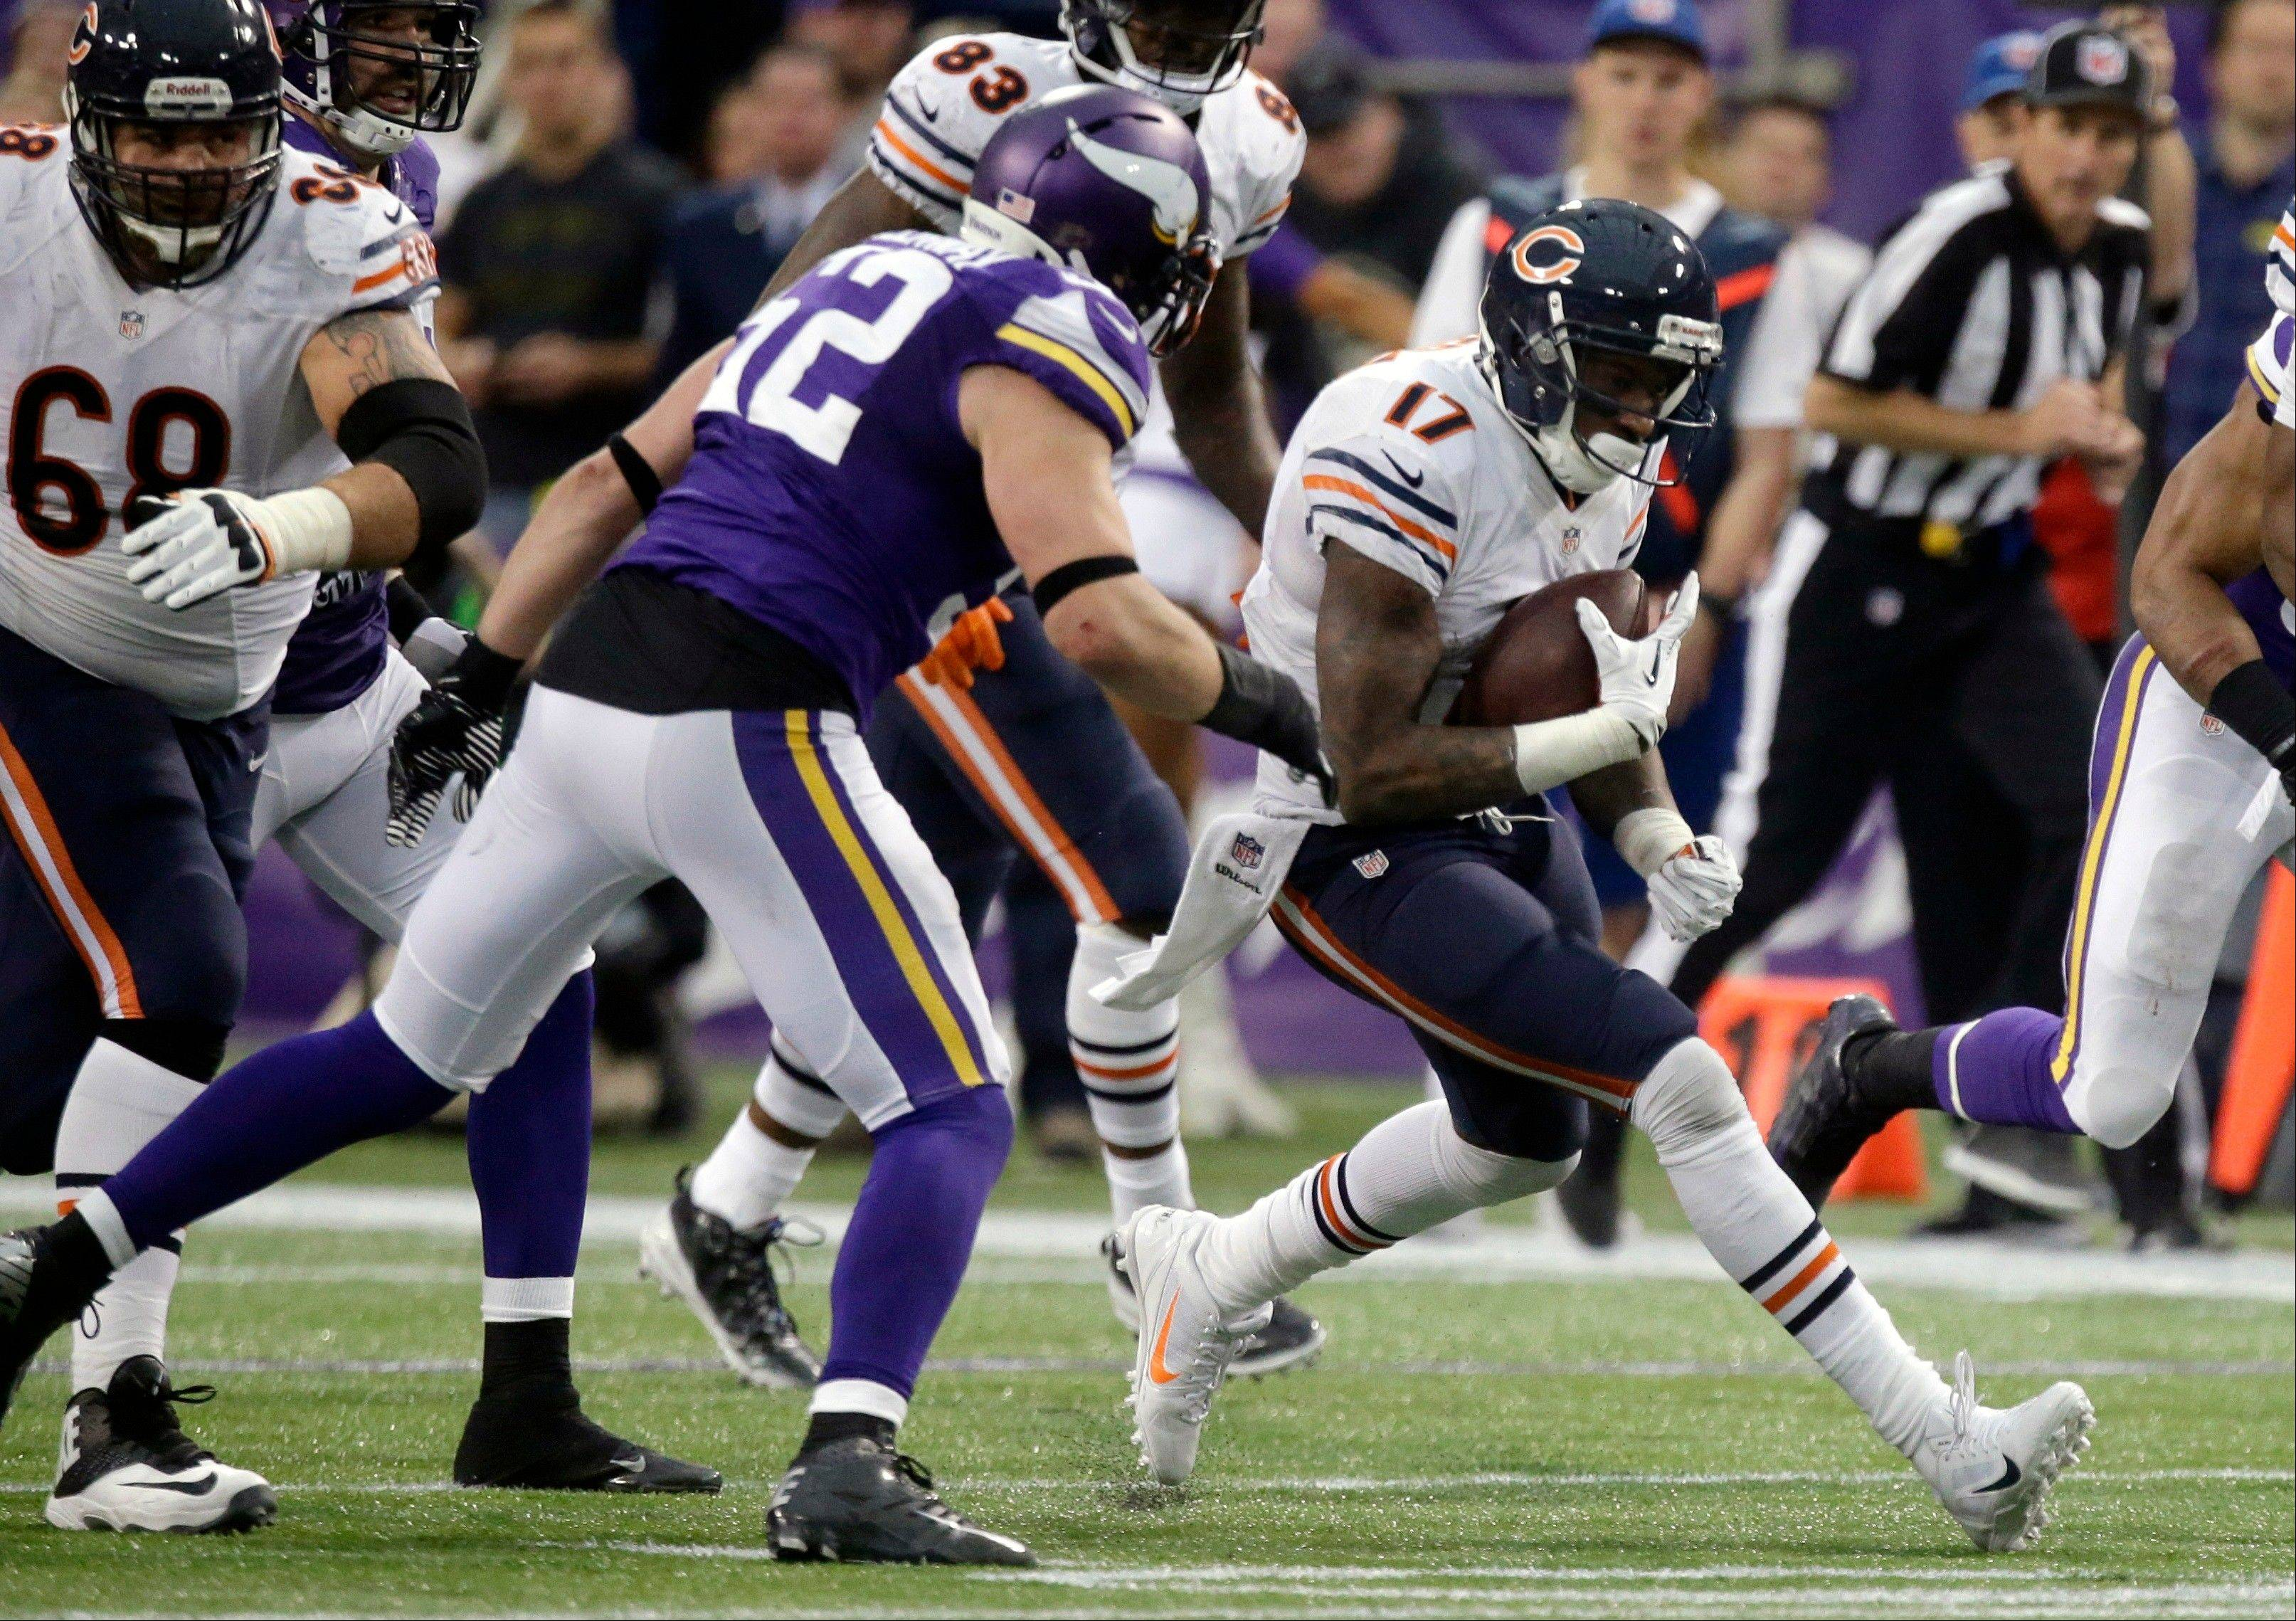 Bears blow game in overtime, lose to Vikings 23-20